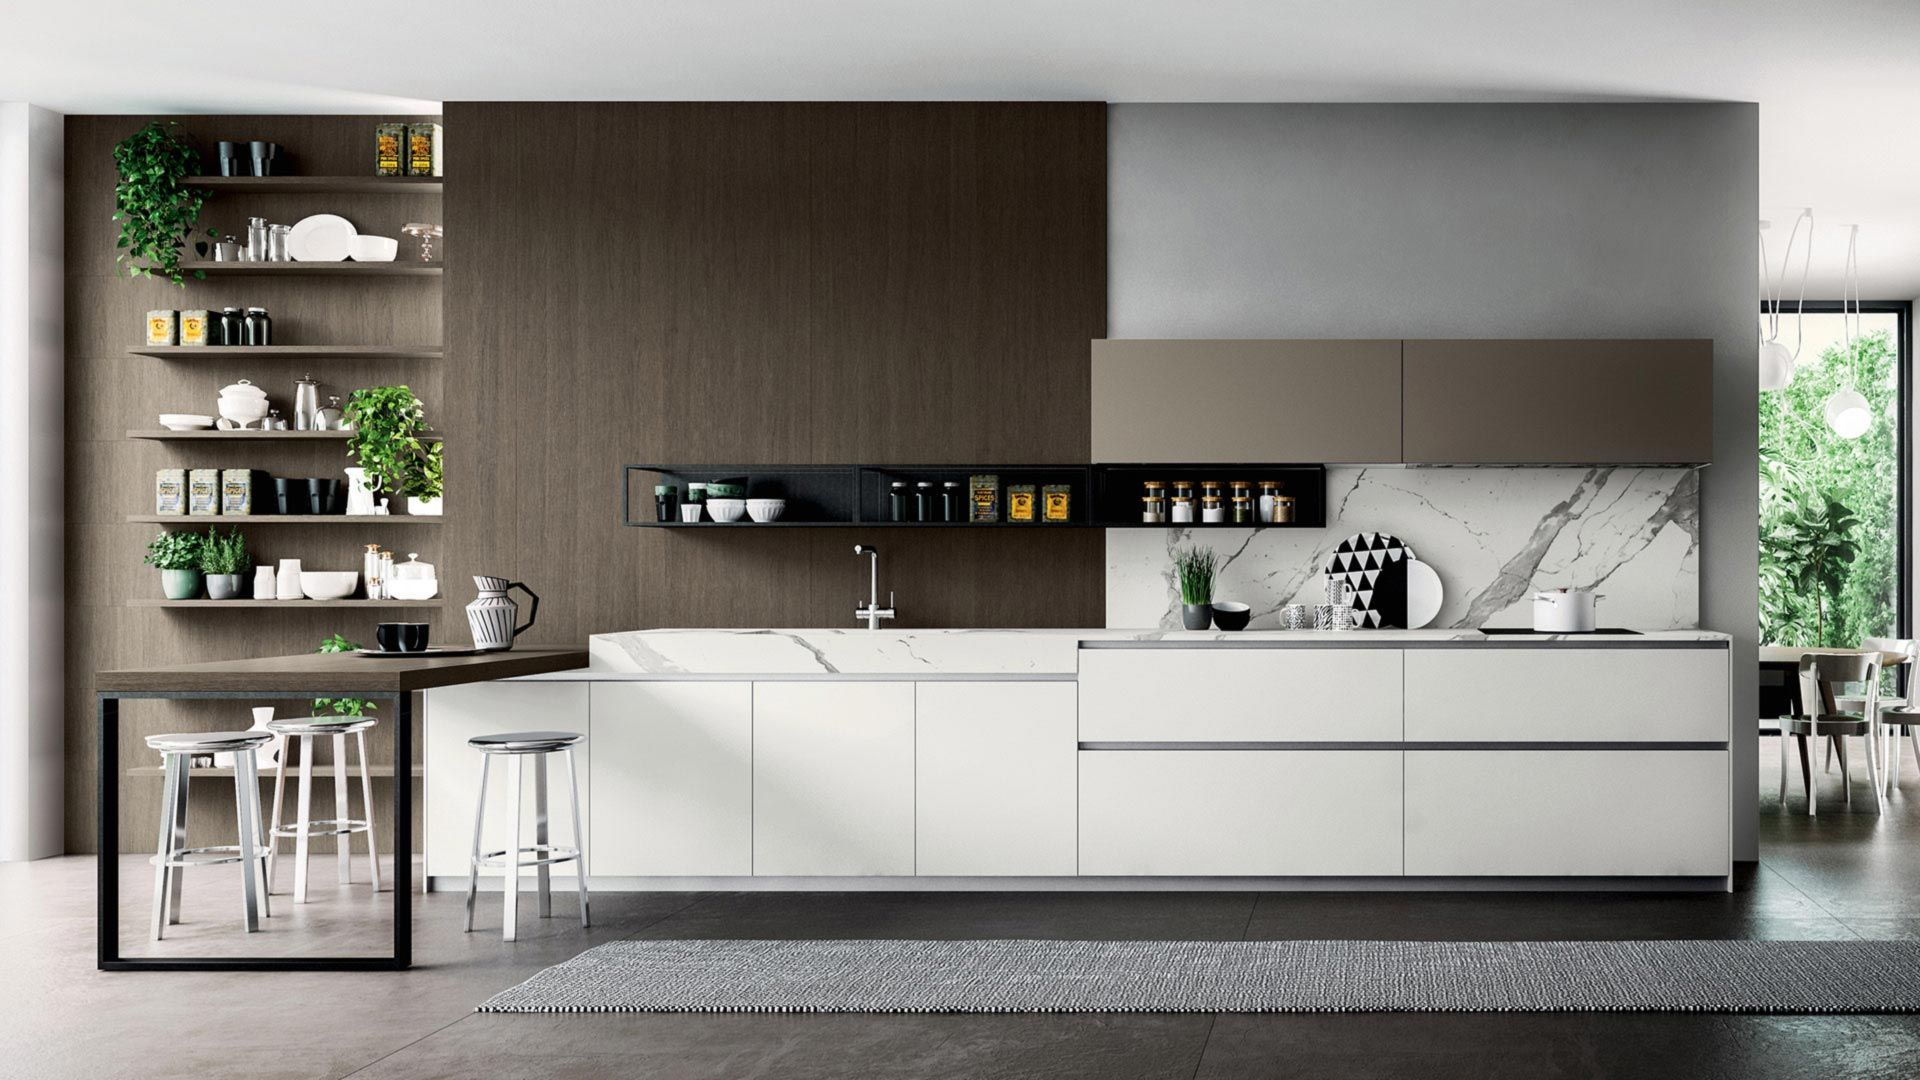 The Cabinet Door Of The T16 Kitchen Is One Of A Kind Combining Different Materials Within A Single Element And Offering A Choice Of Styl Cuisine Design Kitchen Design Cabinet Doors